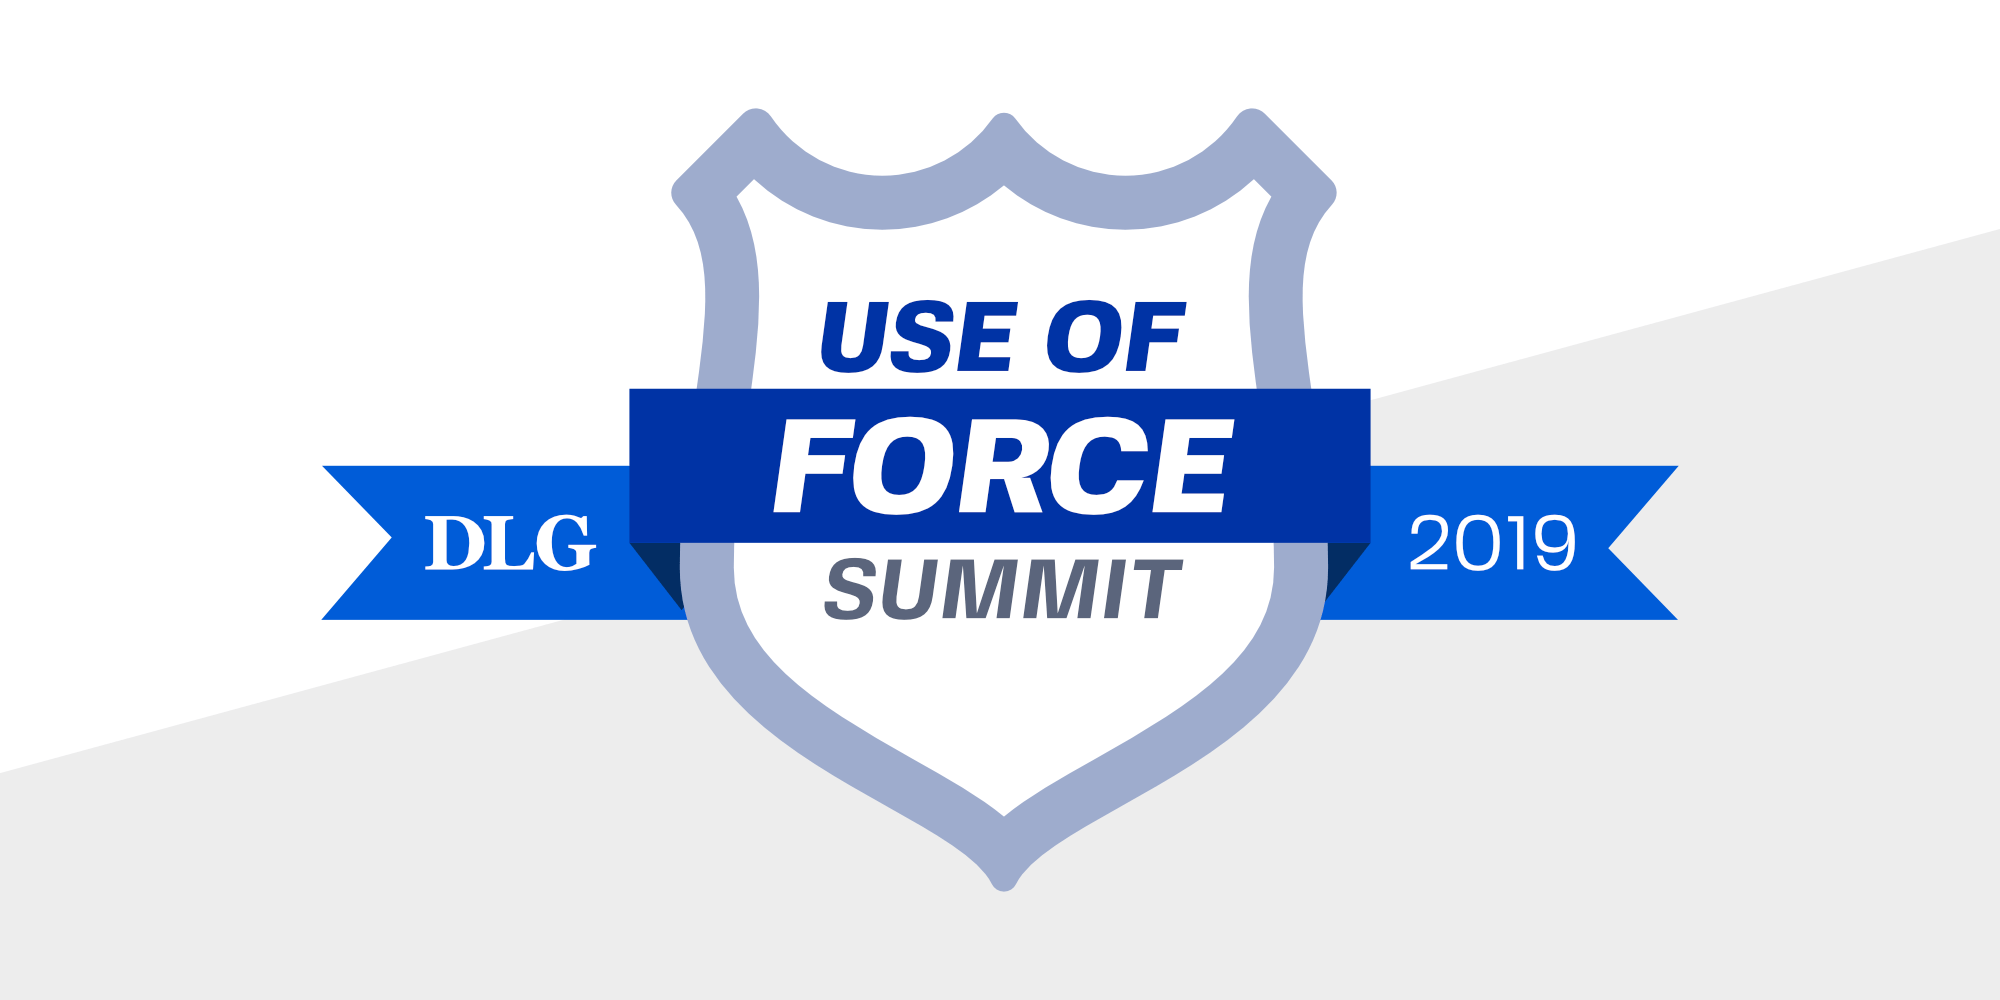 Use of Force Summit 2019